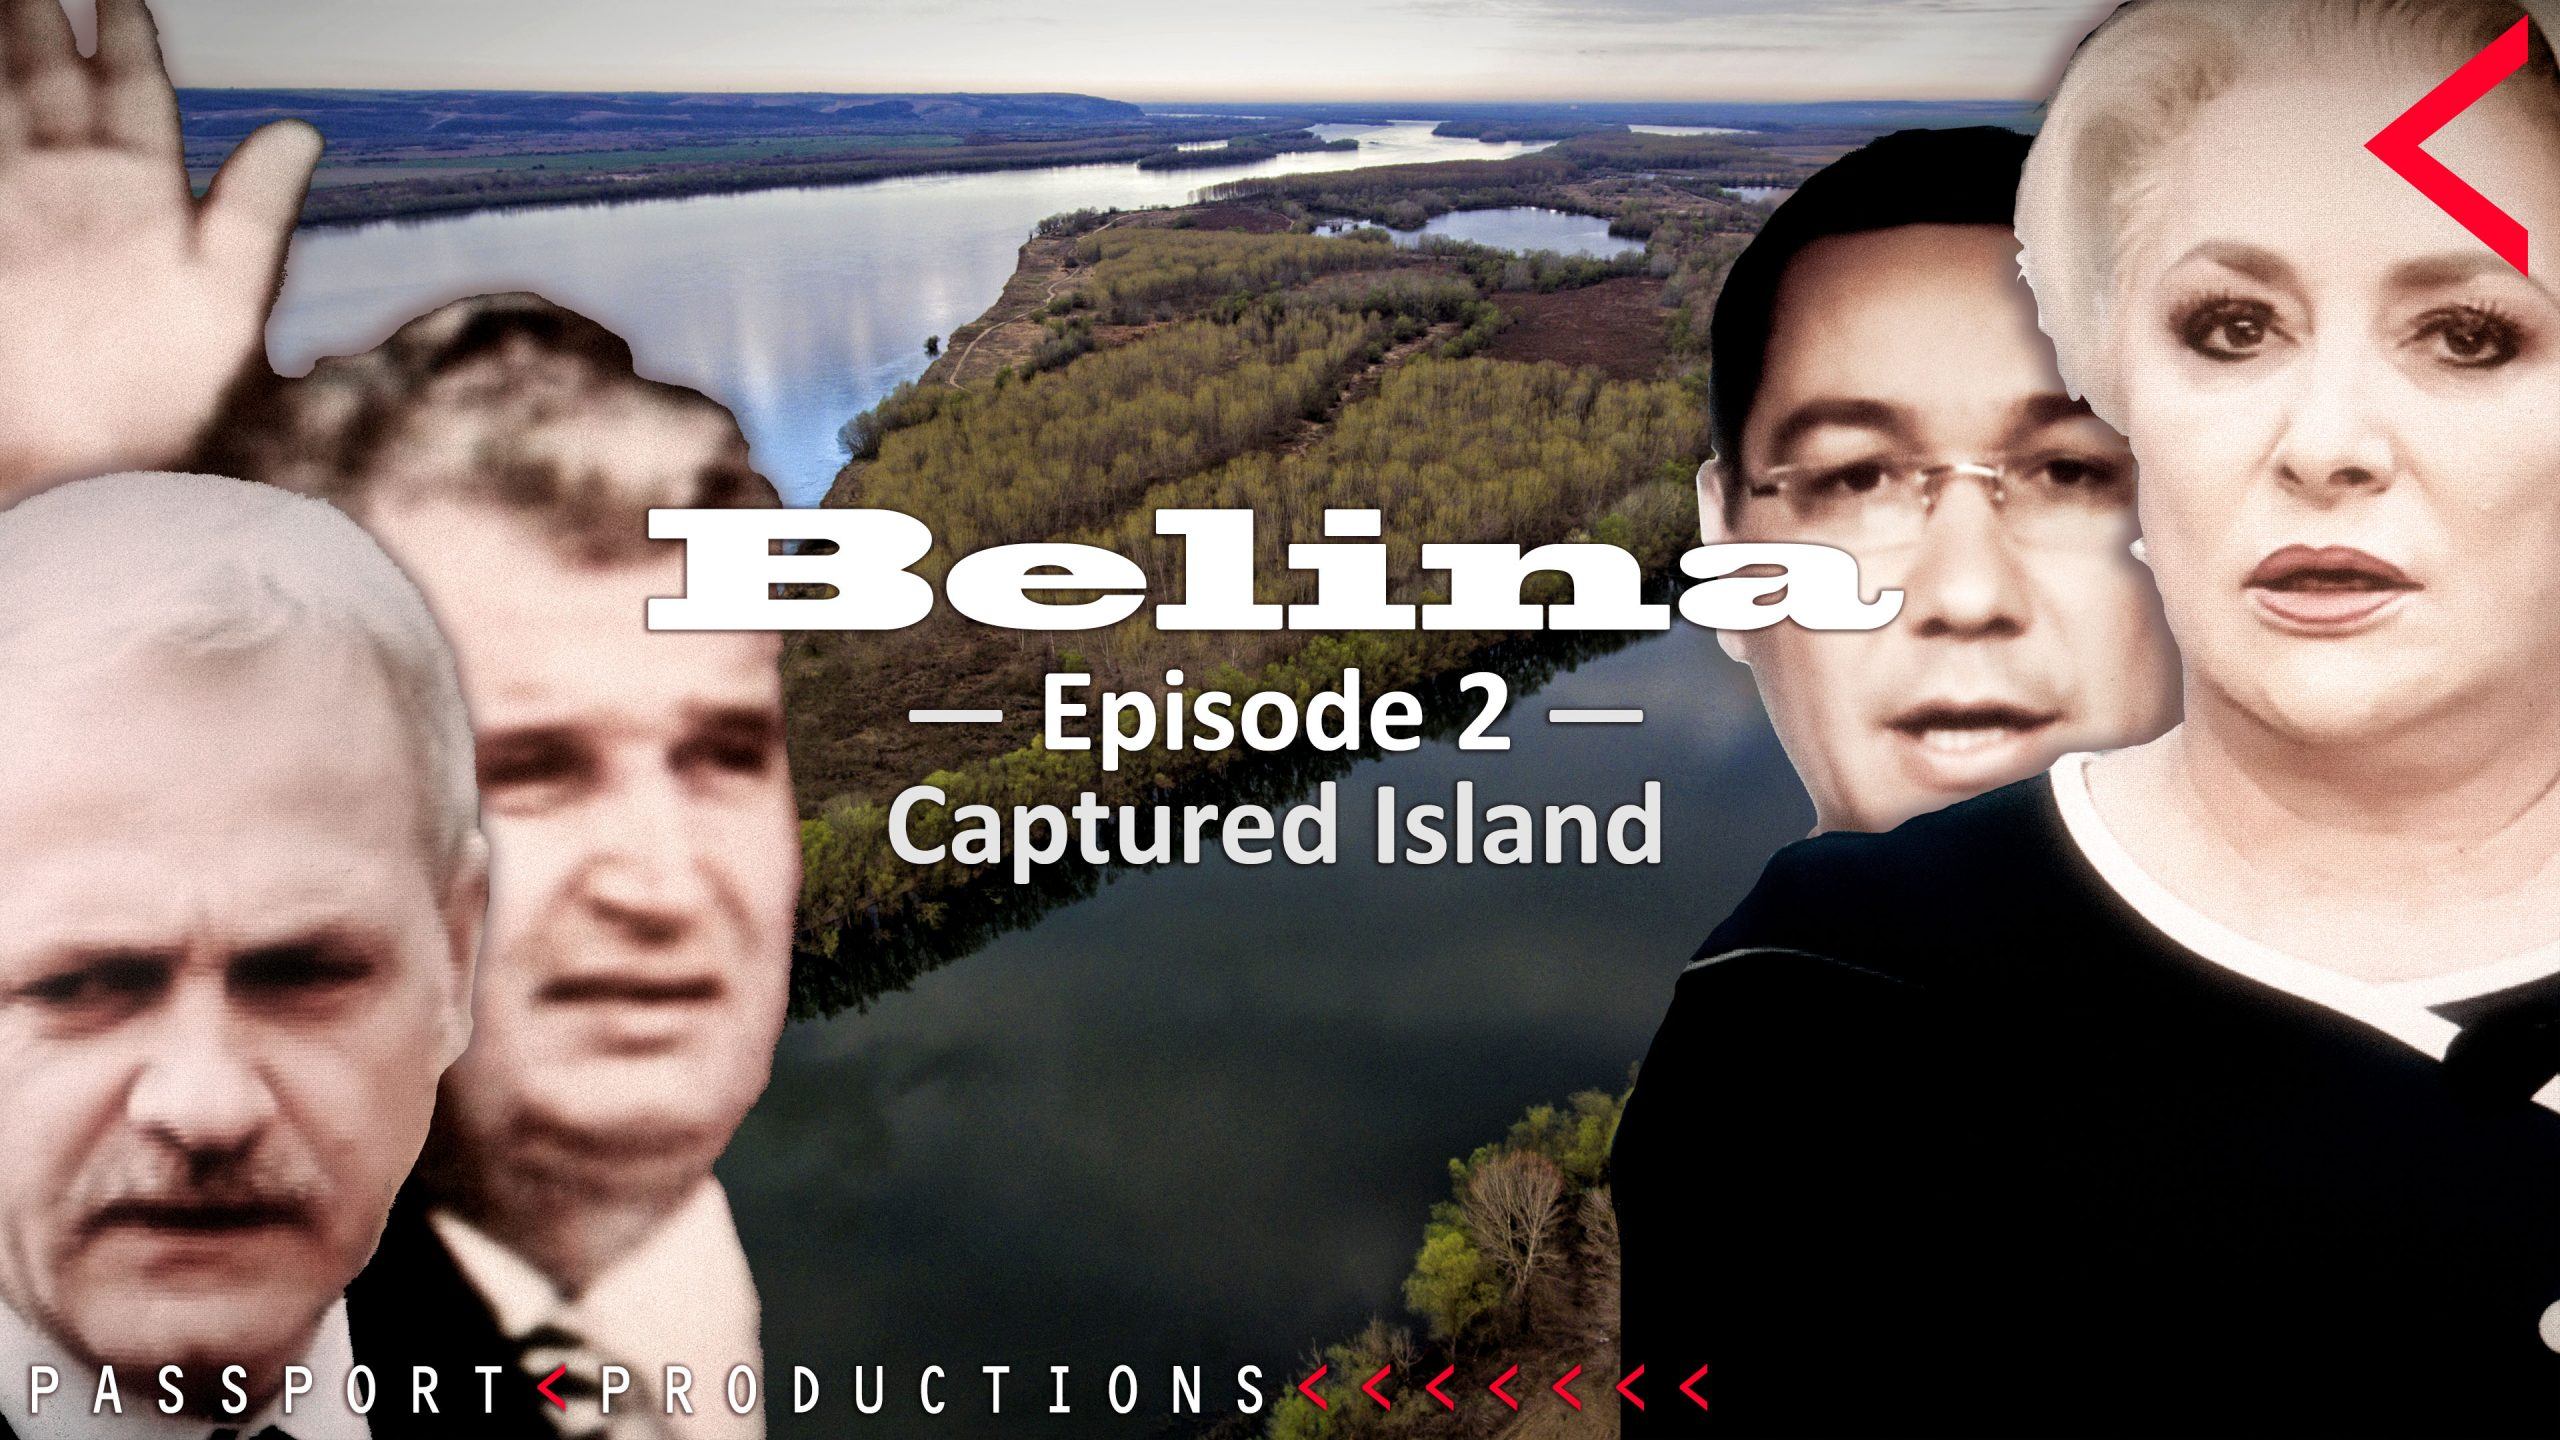 Belina - Episode 2 - Captured Island